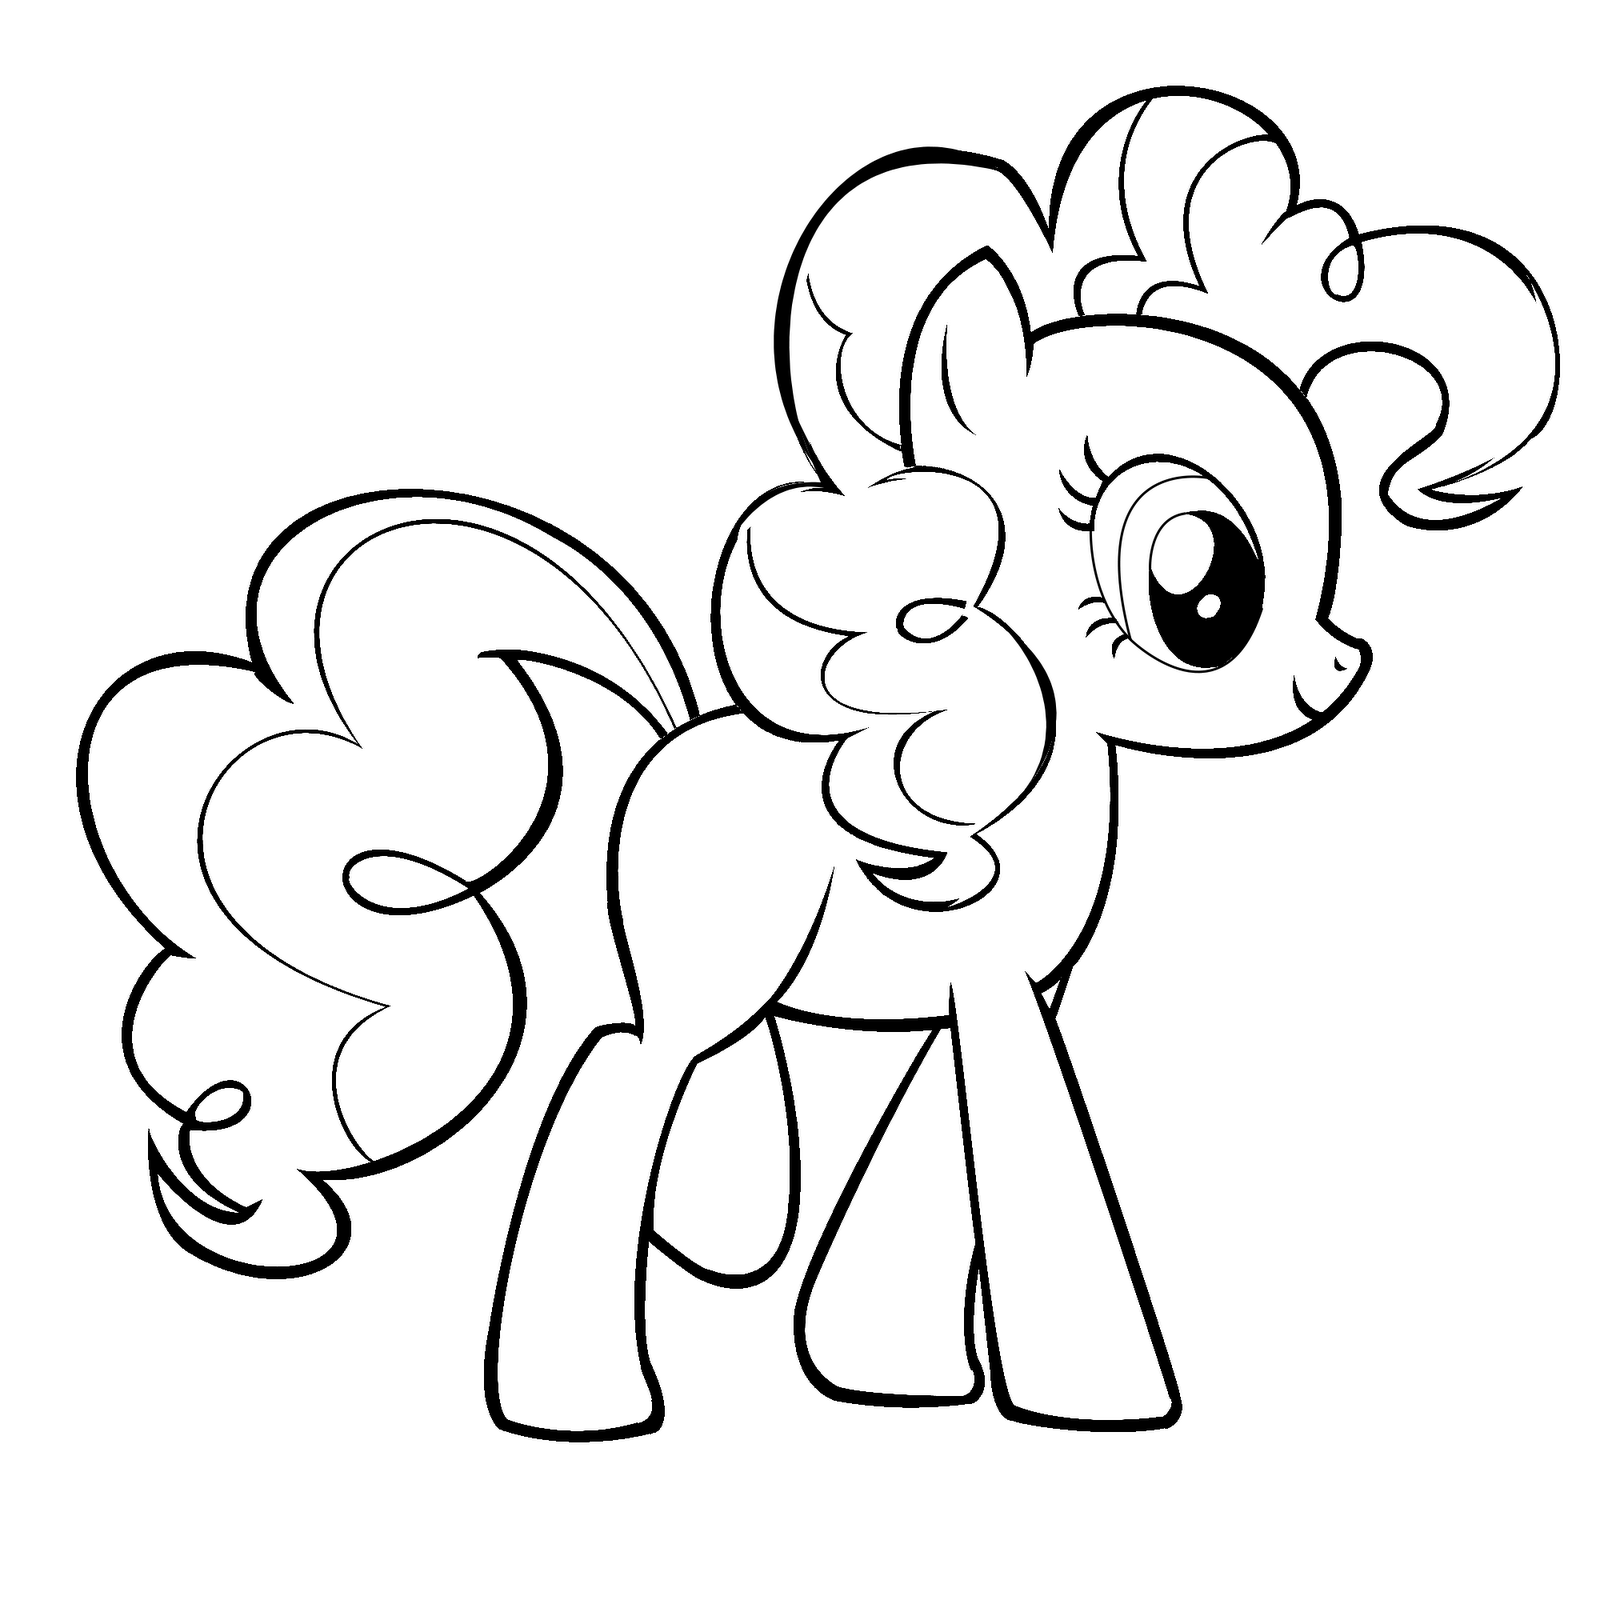 printable my little pony printable my little pony little printable pony my